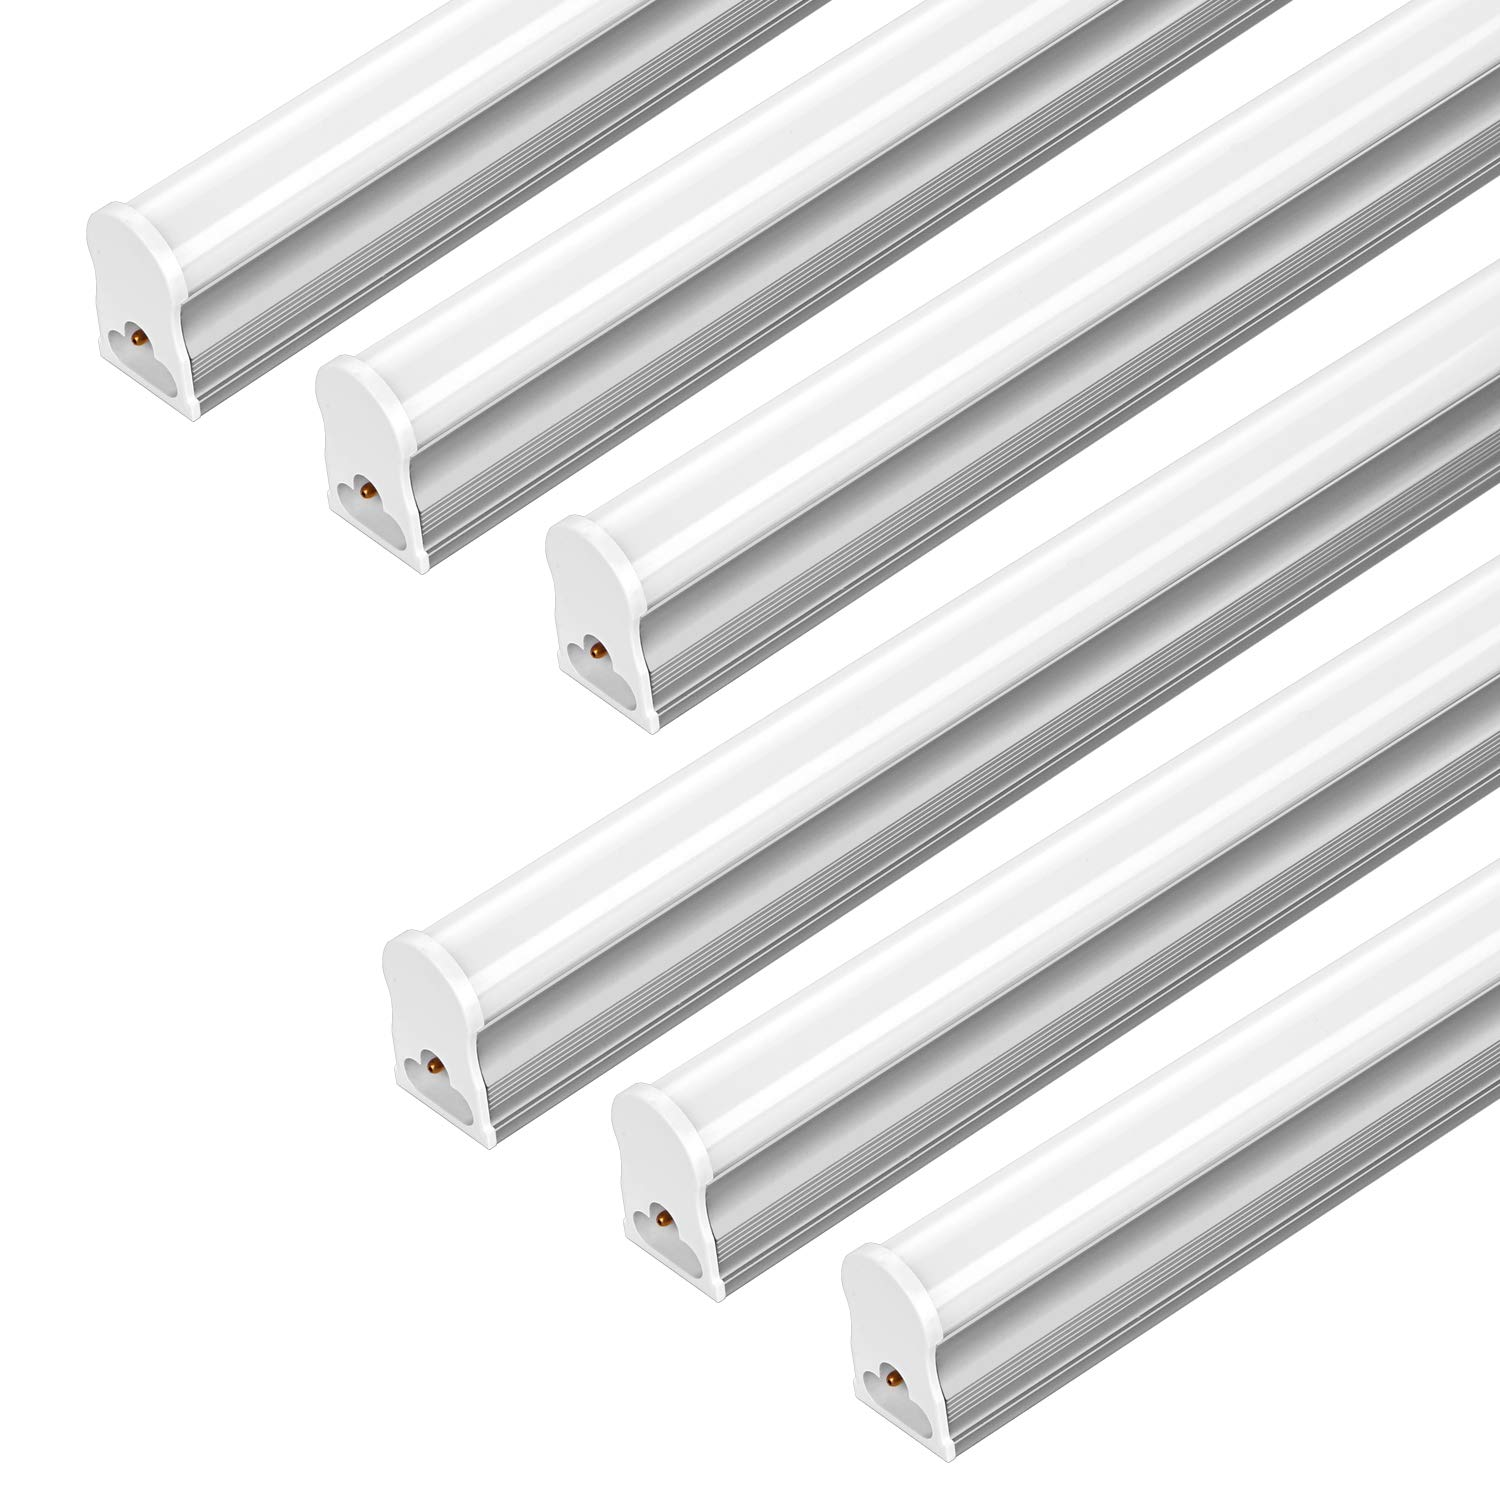 FrenchMay LED T5 mini utility linkable shop light 4ft, 22W, 85CRI, 2200Lumens, 5000K, 32w Fluorescent Equivalent, integrated ceiling light & under Cabinet shop light for garage, workshop, basement by FrenchMay (Image #1)